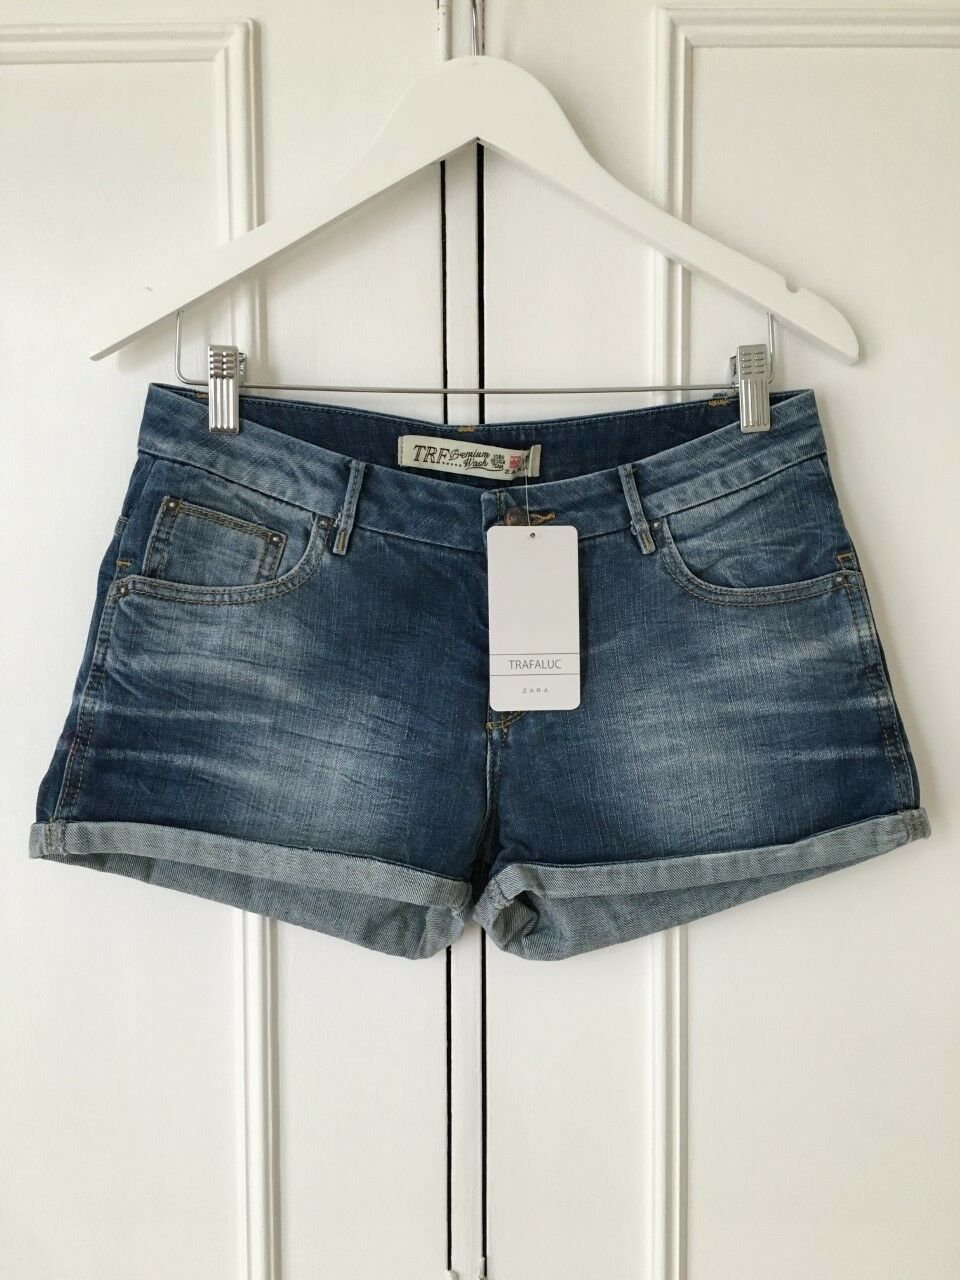 Zara TRF Denim Shorts in 'Mid-bluee' (S UK10 US6 MEX26) (RRP .99)